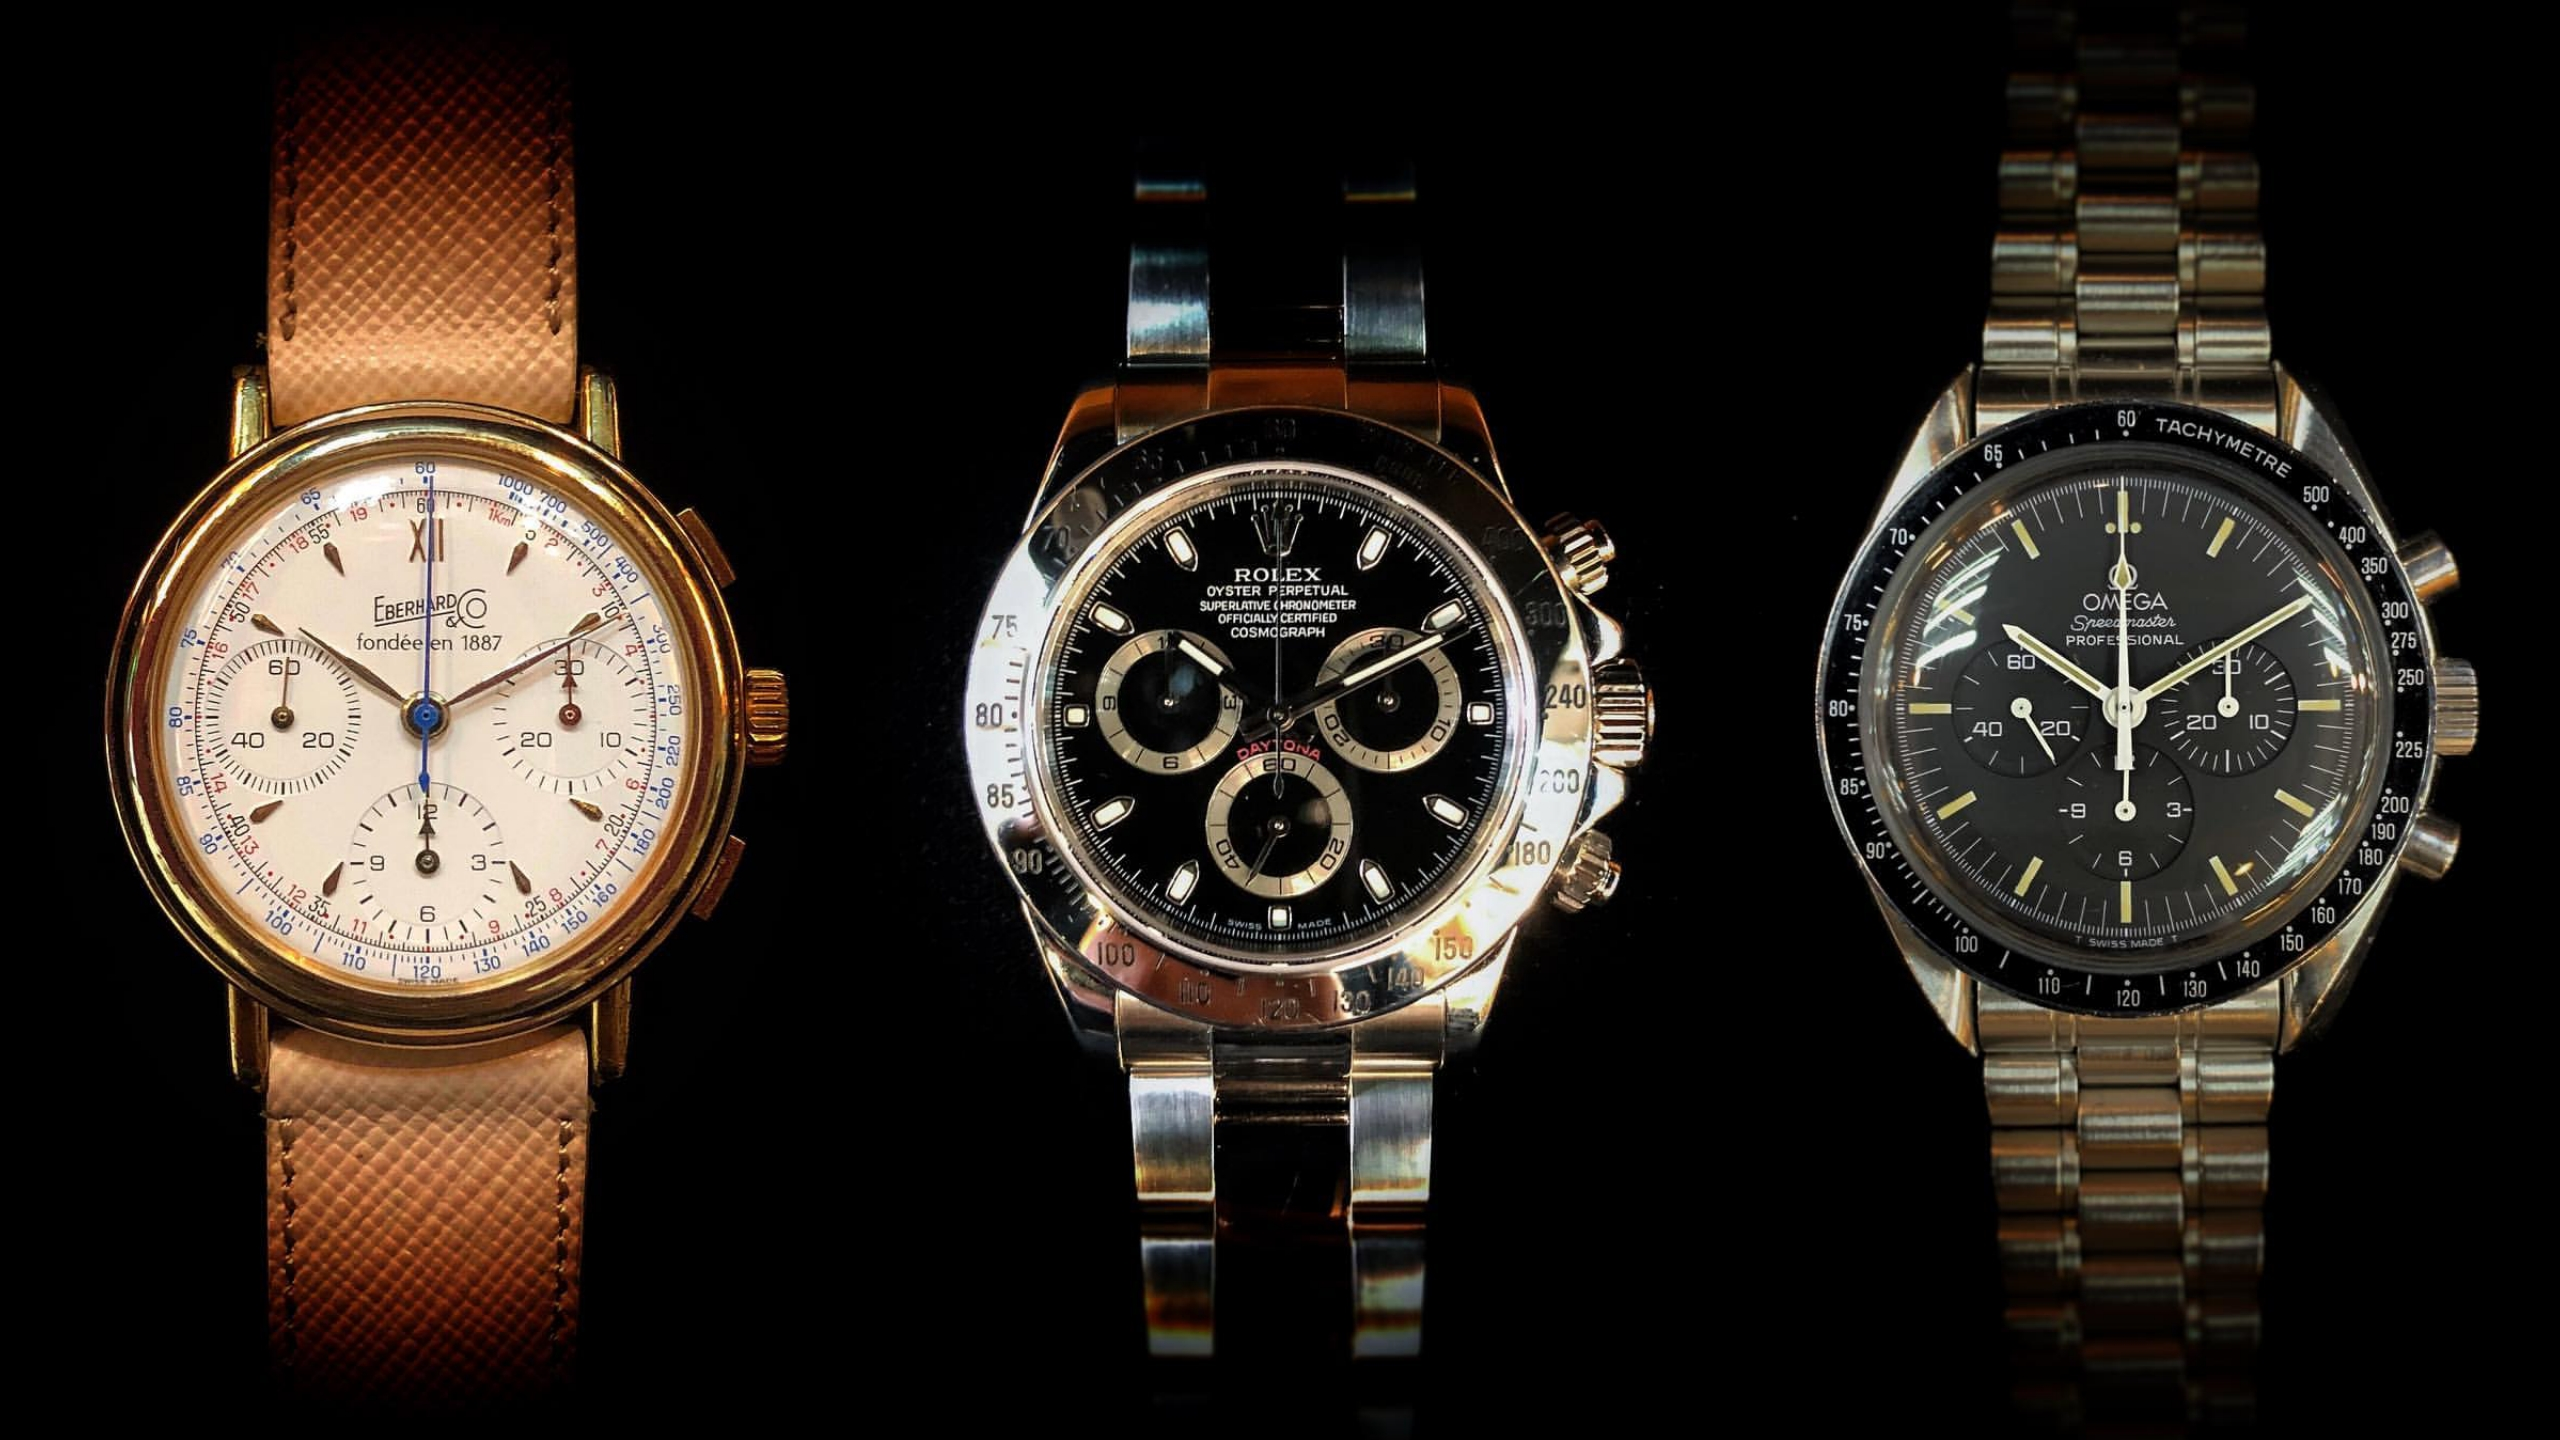 10 watch collectors to follow on Instagram right now